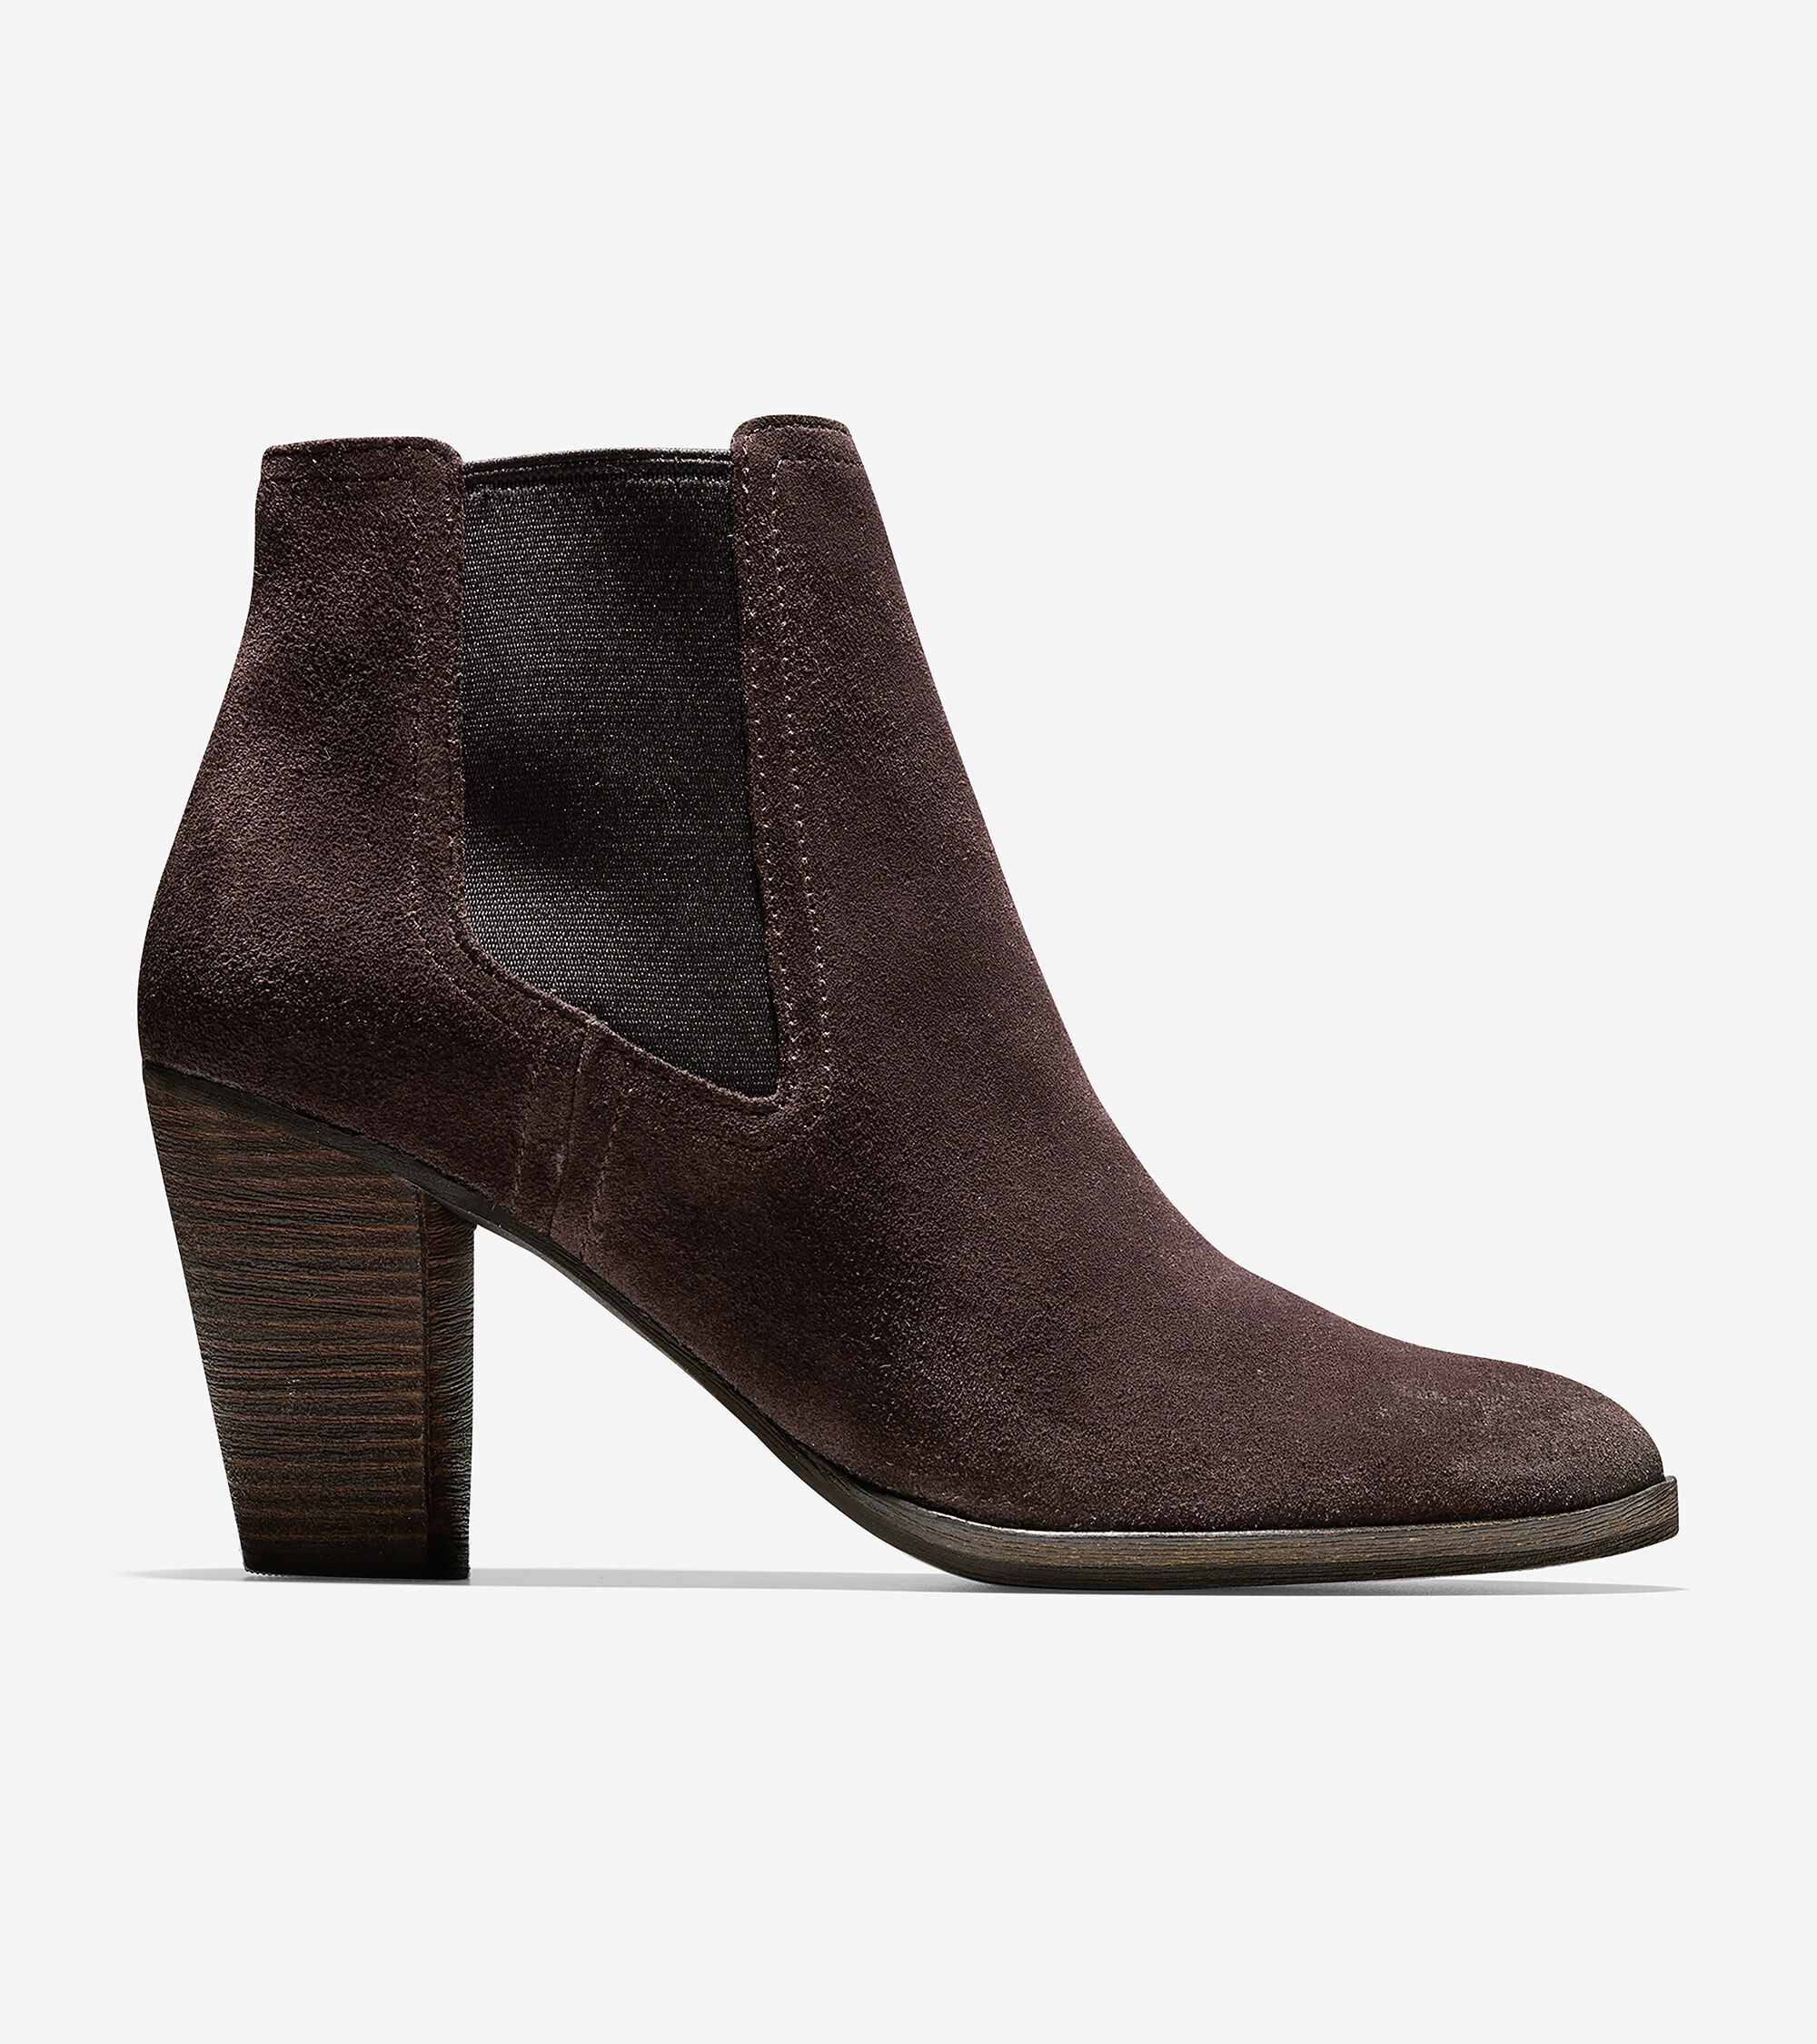 a50cc0b1479 Women s Hayes Gore Booties 75mm in Java Suede